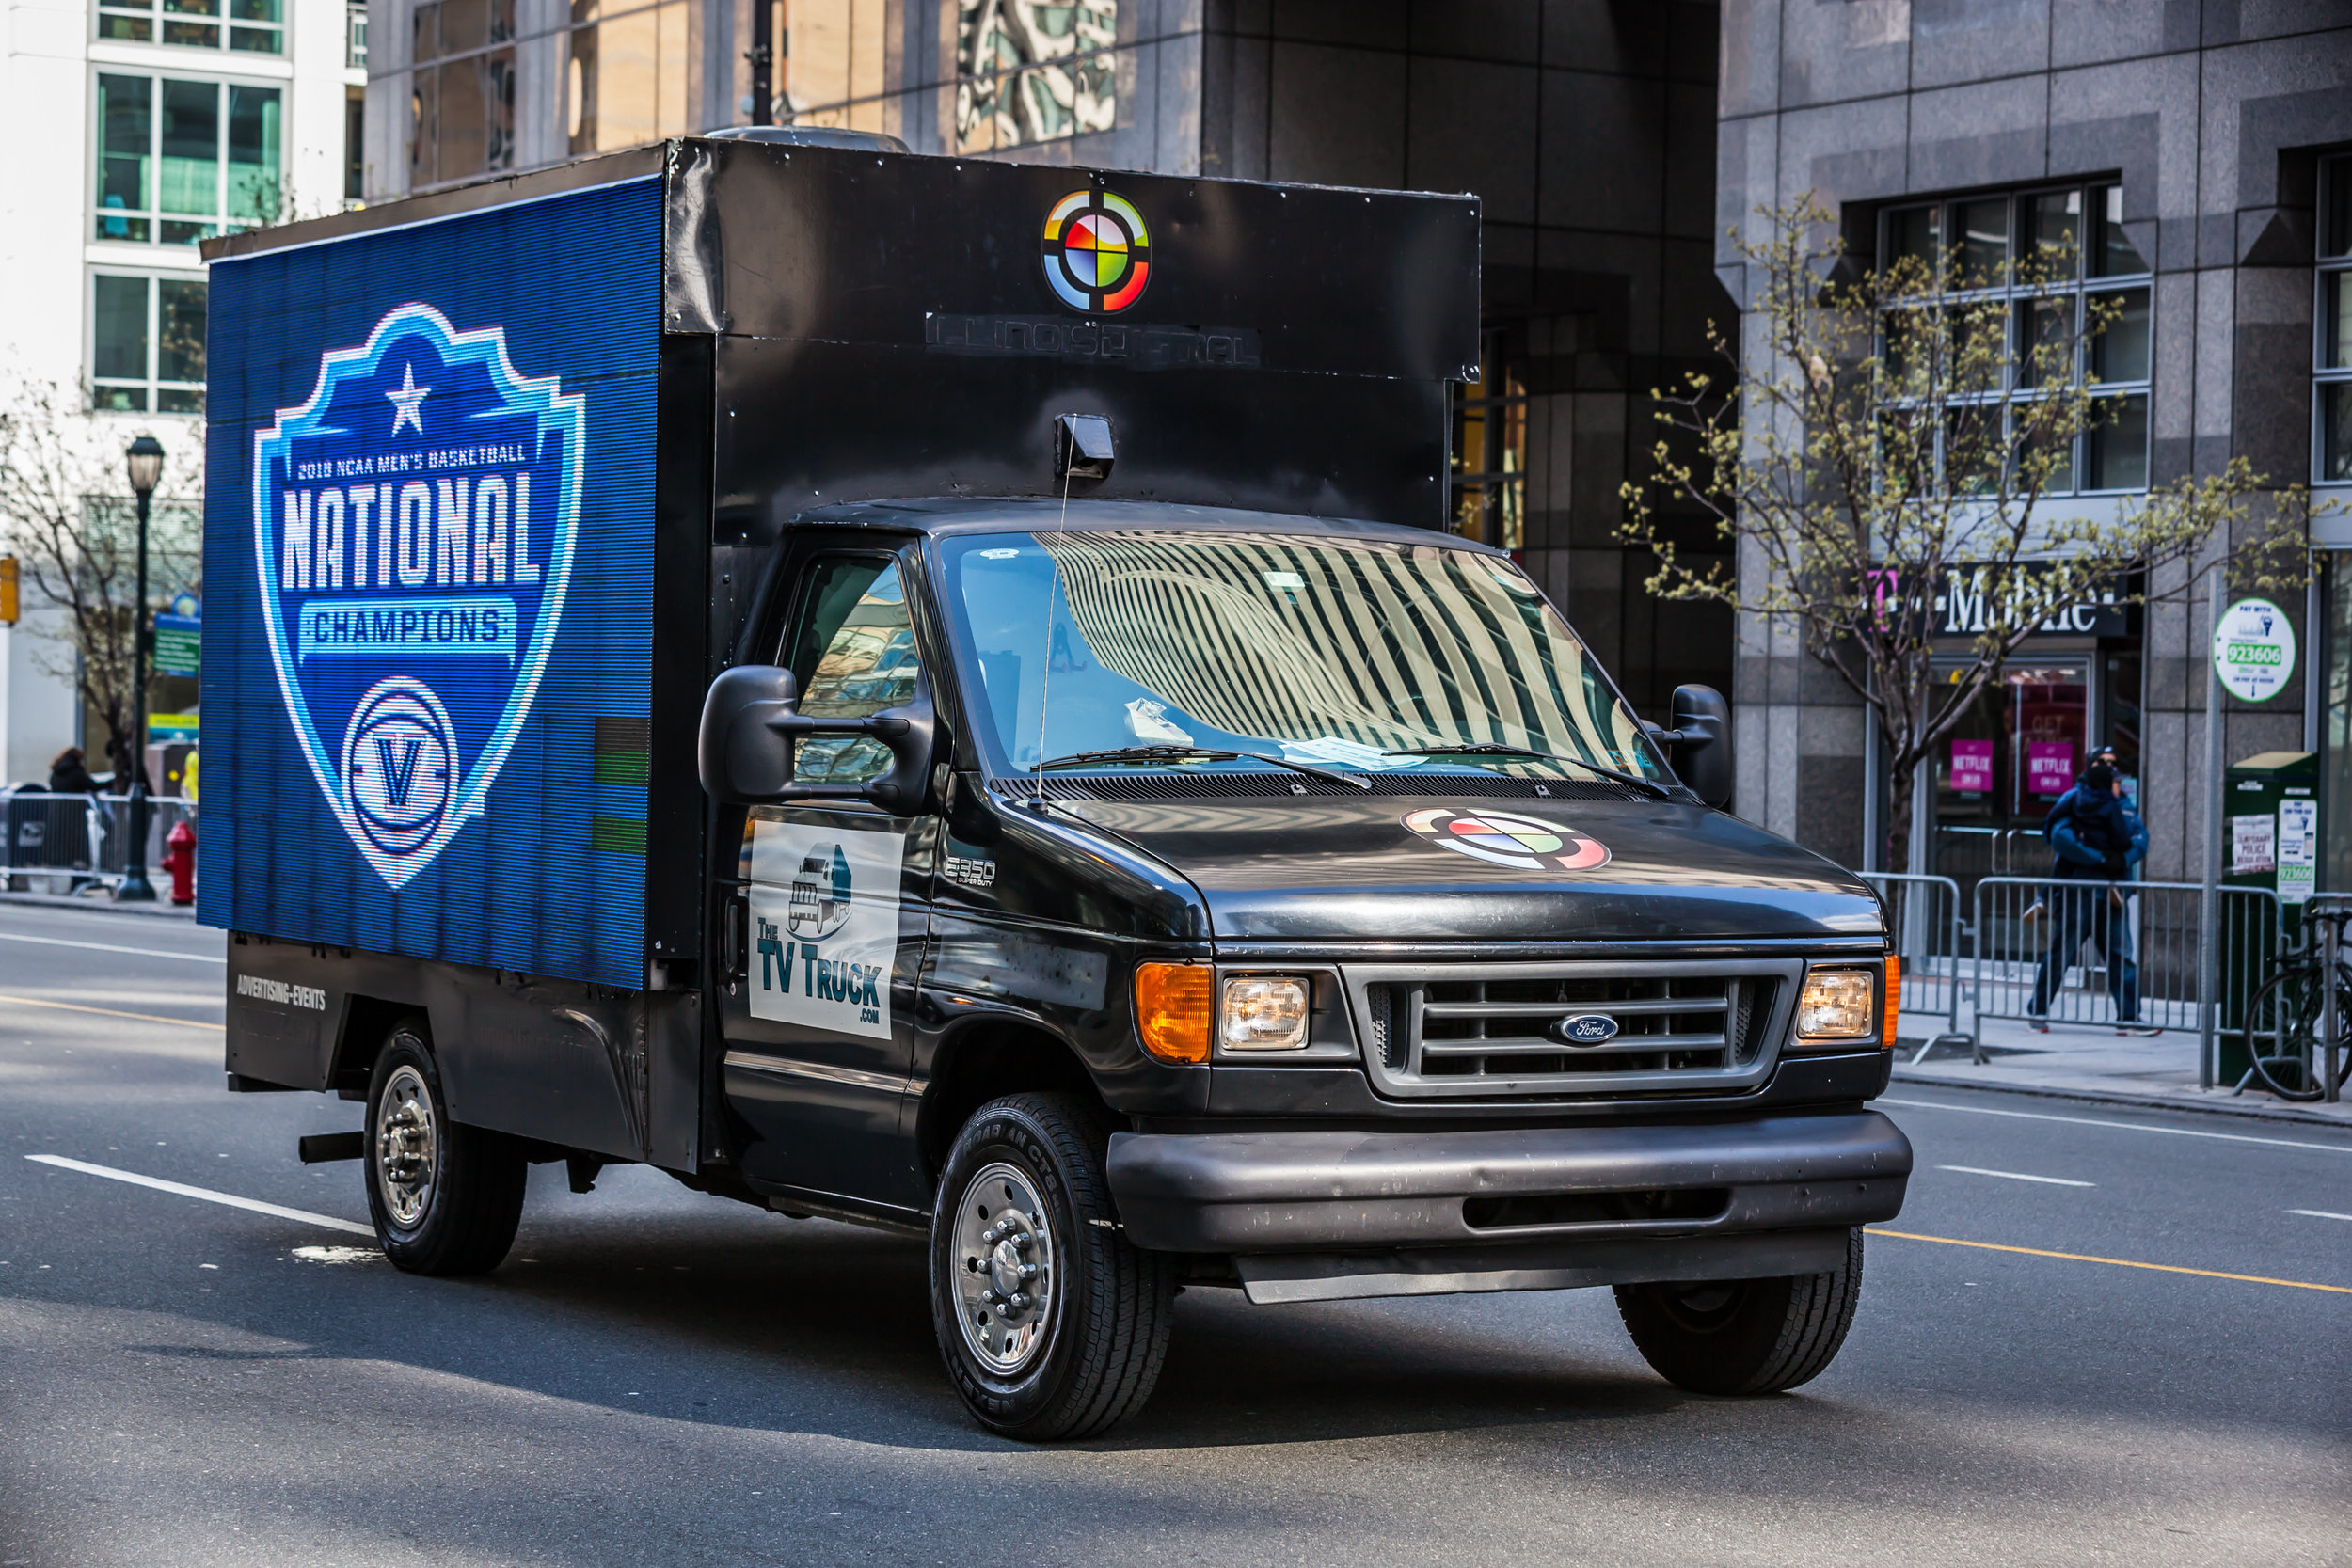 the tv truck villanova parade 2018-7753-3.JPG